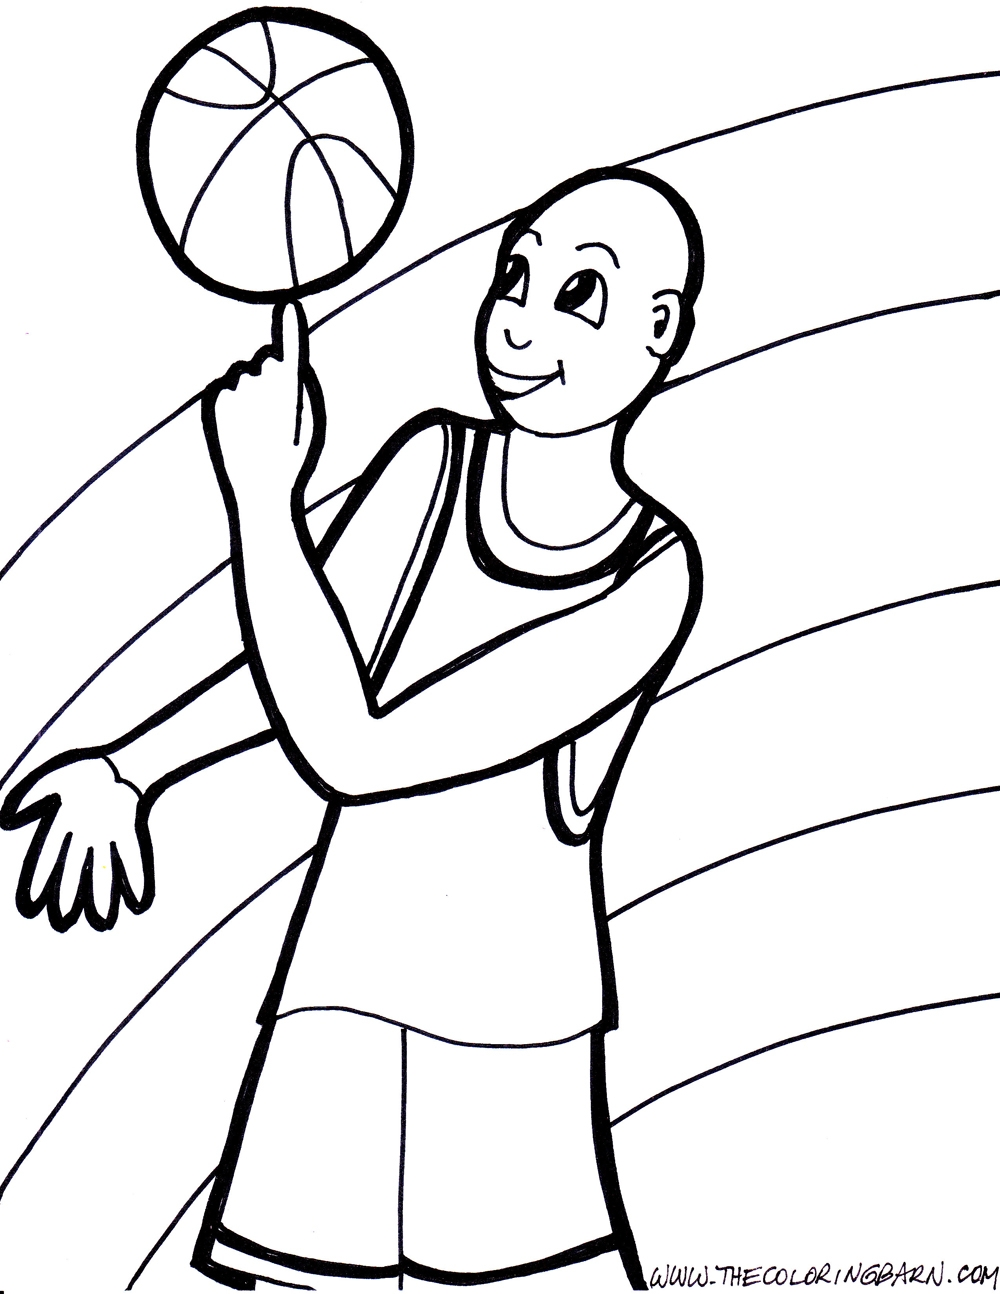 Basketball Coloring Pages - Basketball Coloring Bing Images